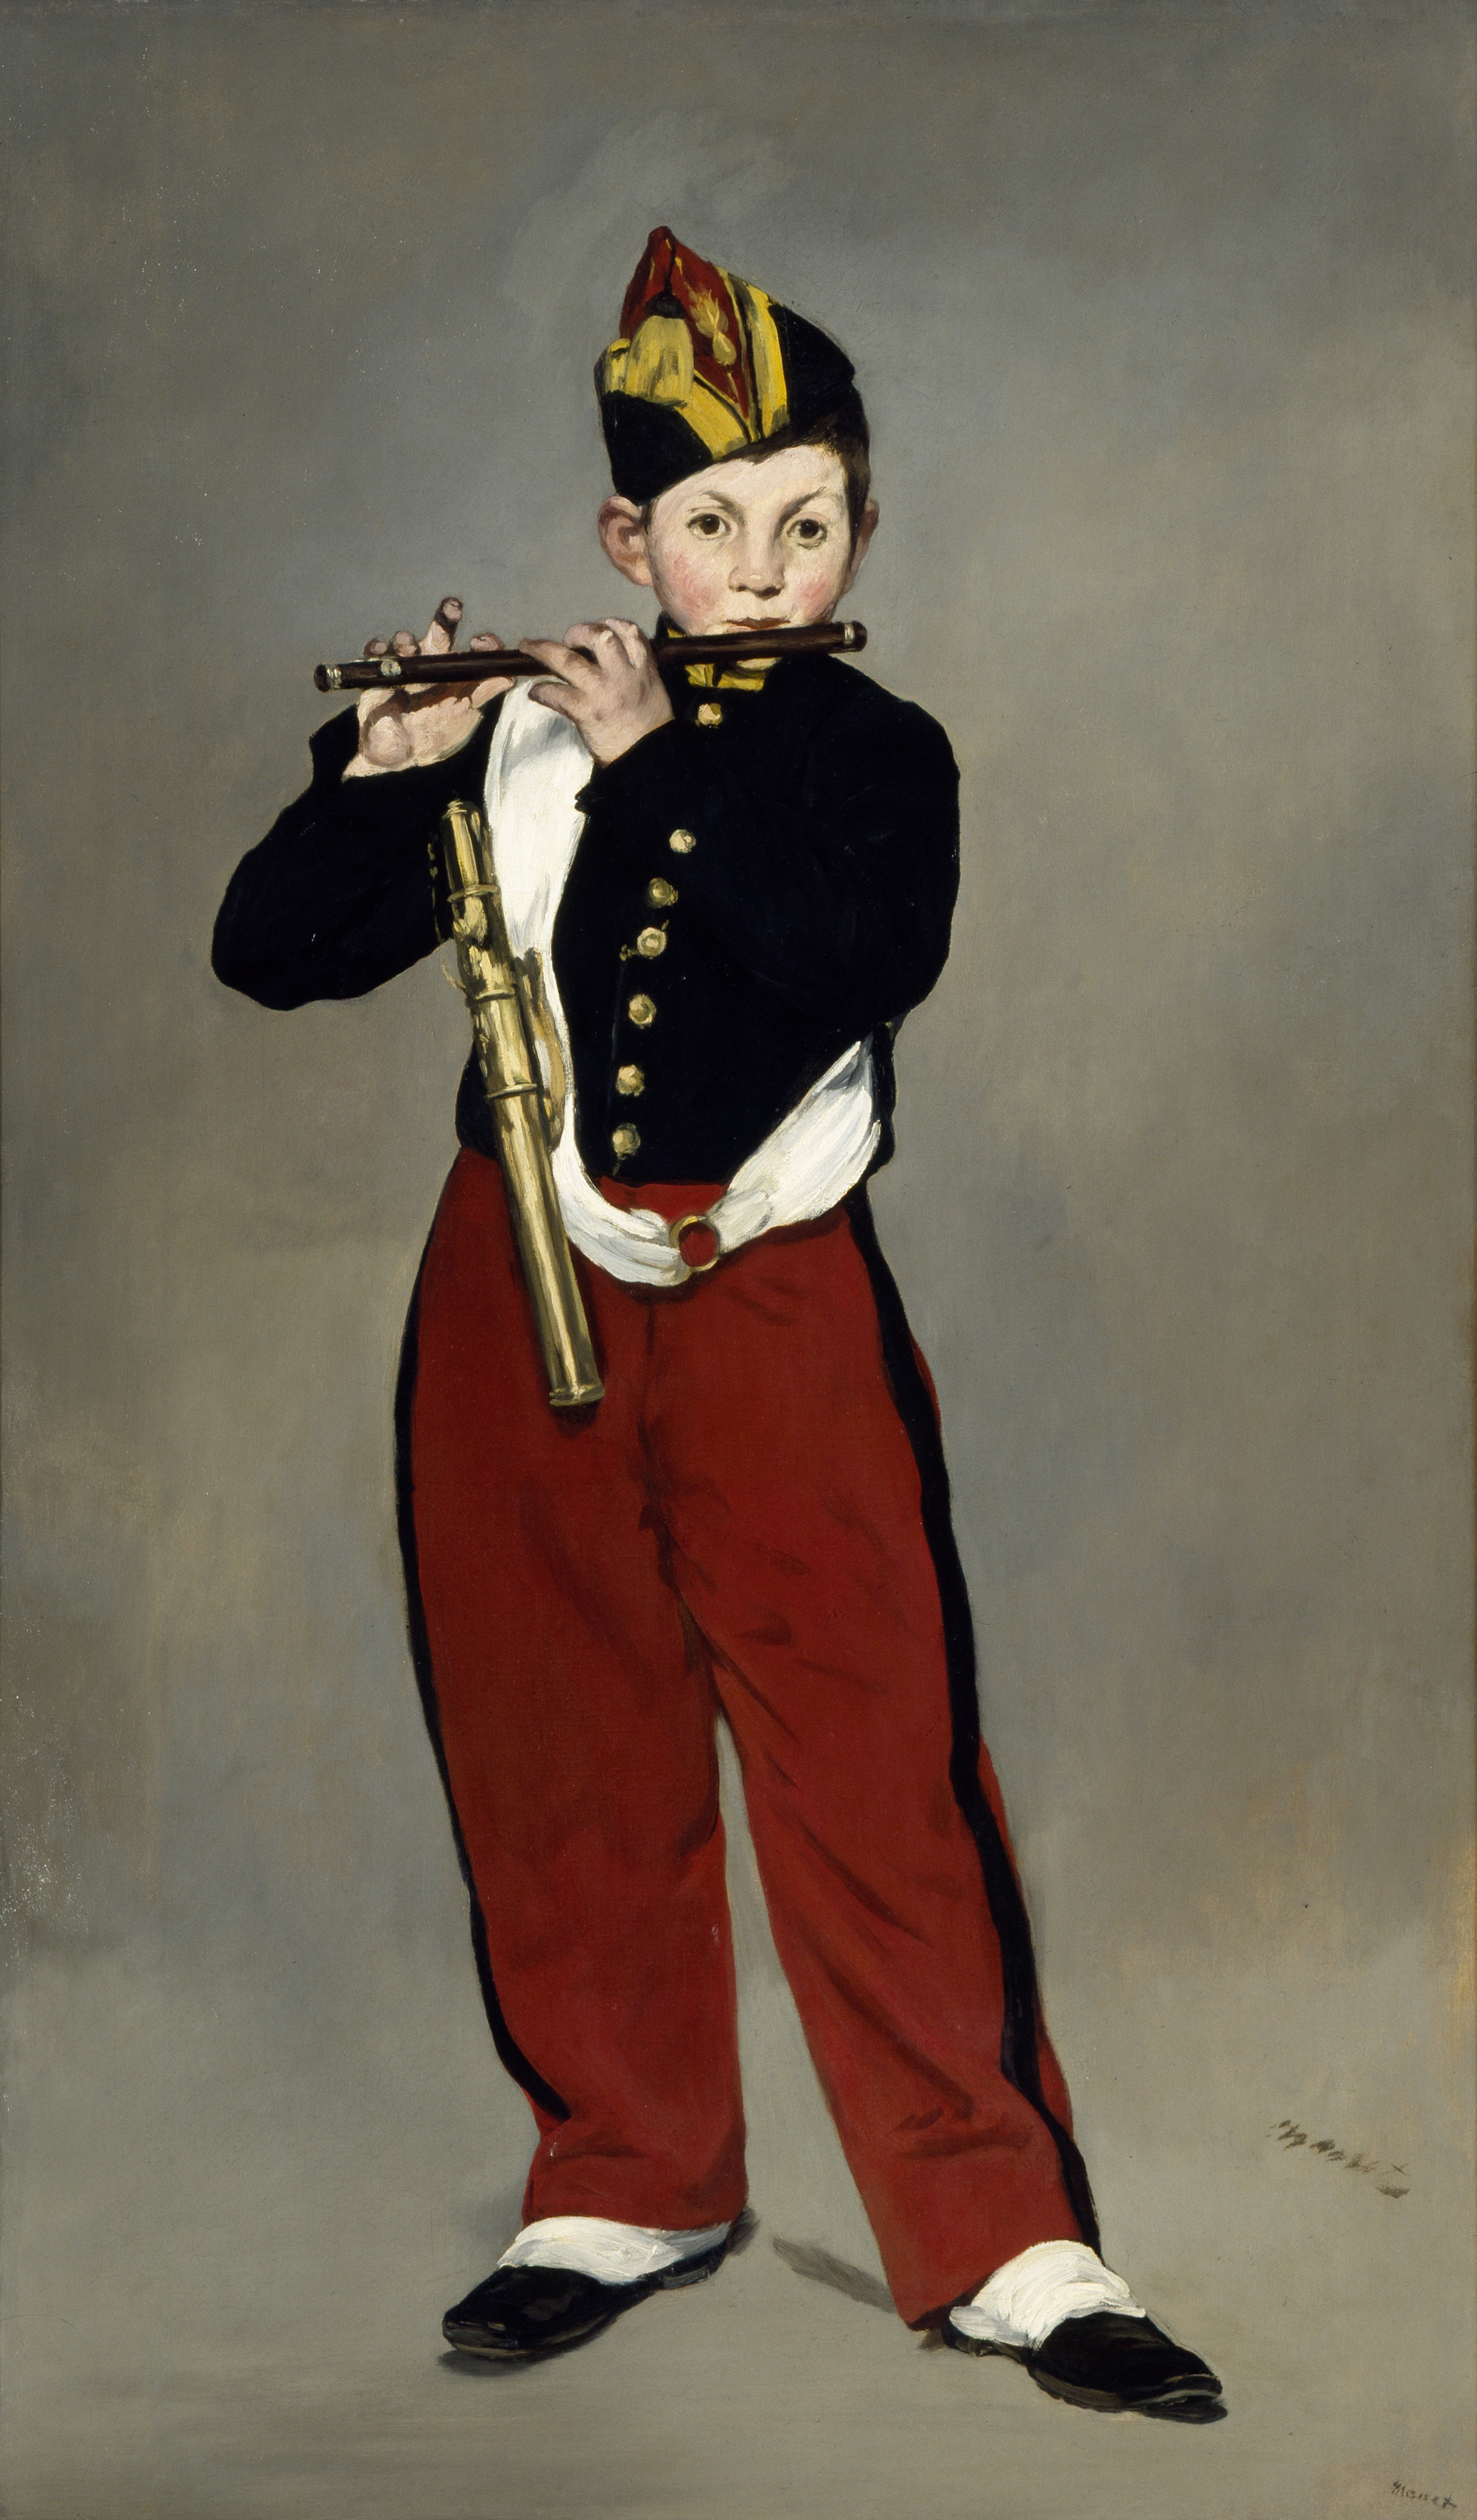 Edouard Manet: Young Flautist, or The Fifer, 1866